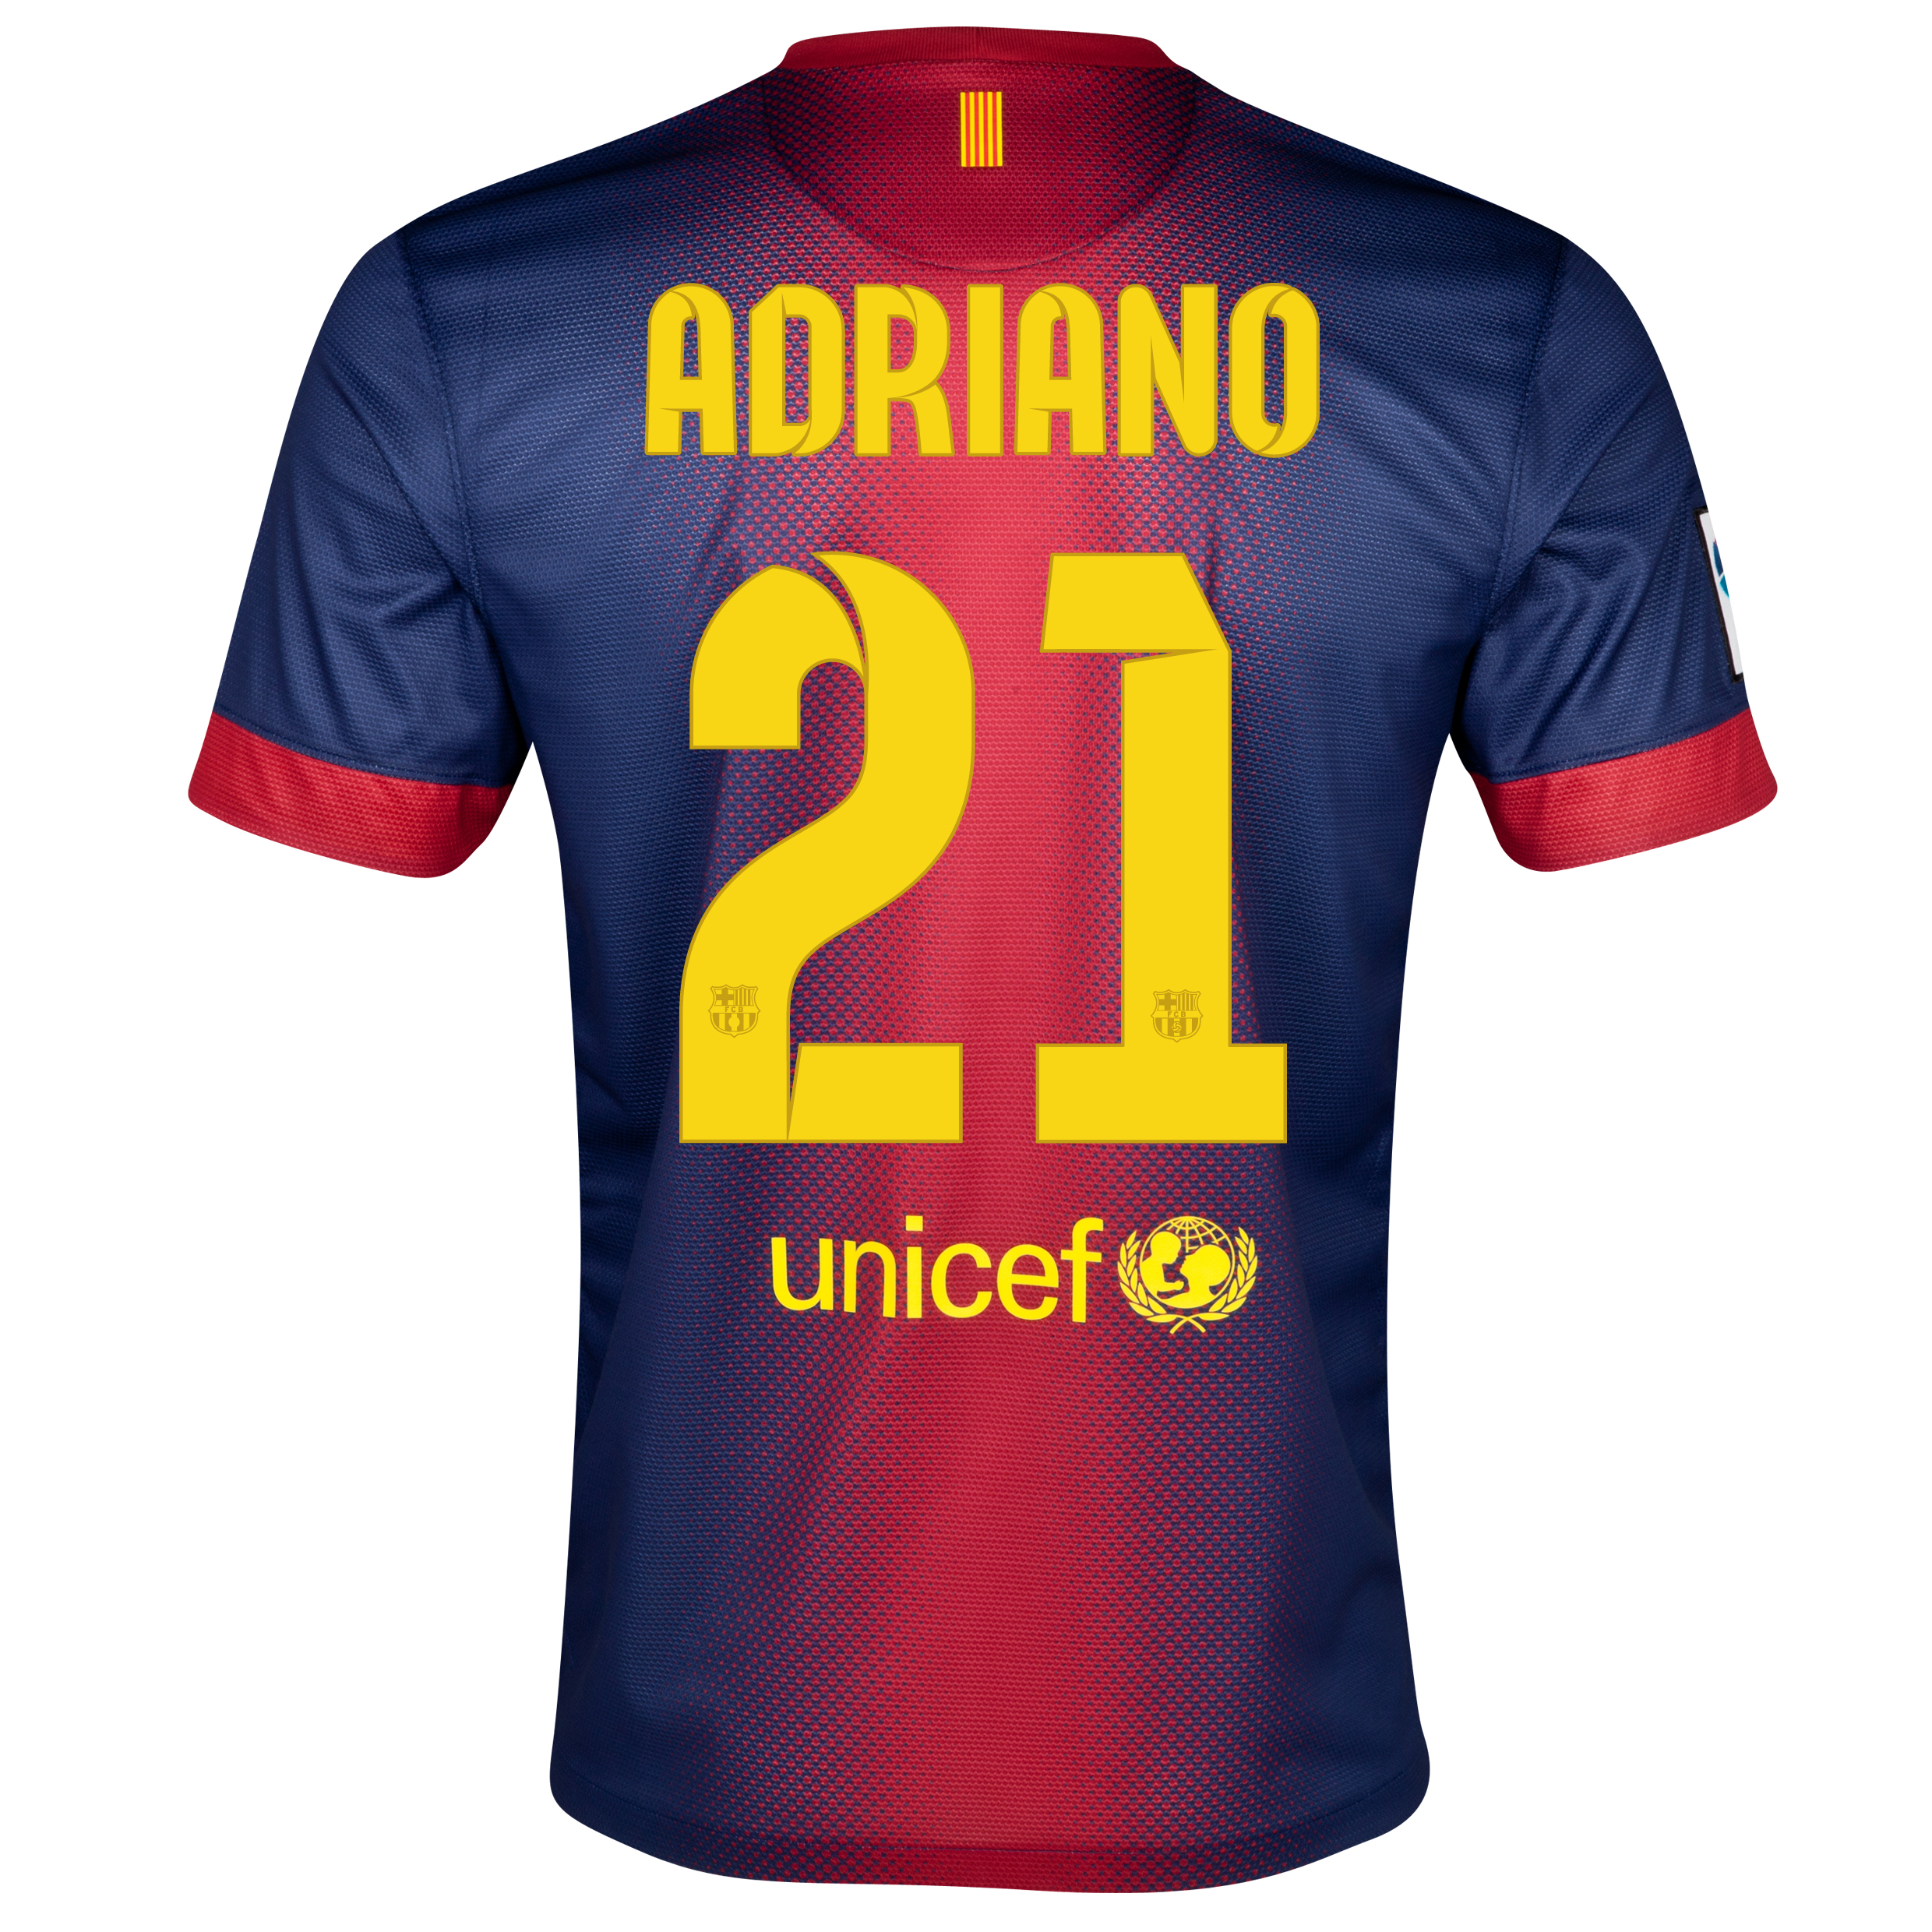 Barcelona Home Shirt 2012/13 - Youths with Adriano 21 printing